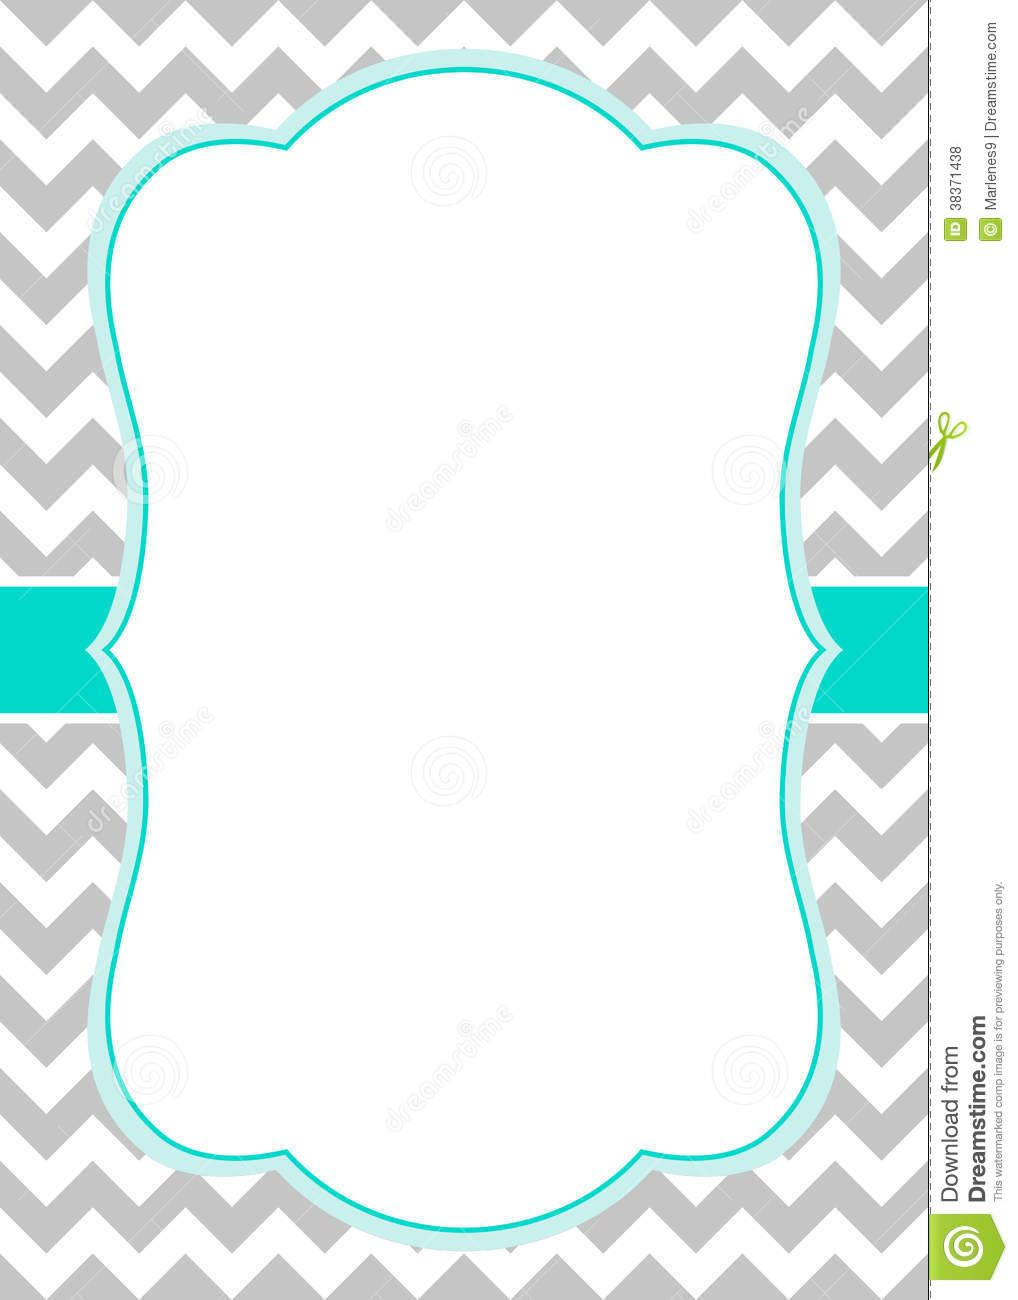 Free Chevron Border Templateadmin Admin Baby Shower Ideas - Card template free: invitation card template for baby shower